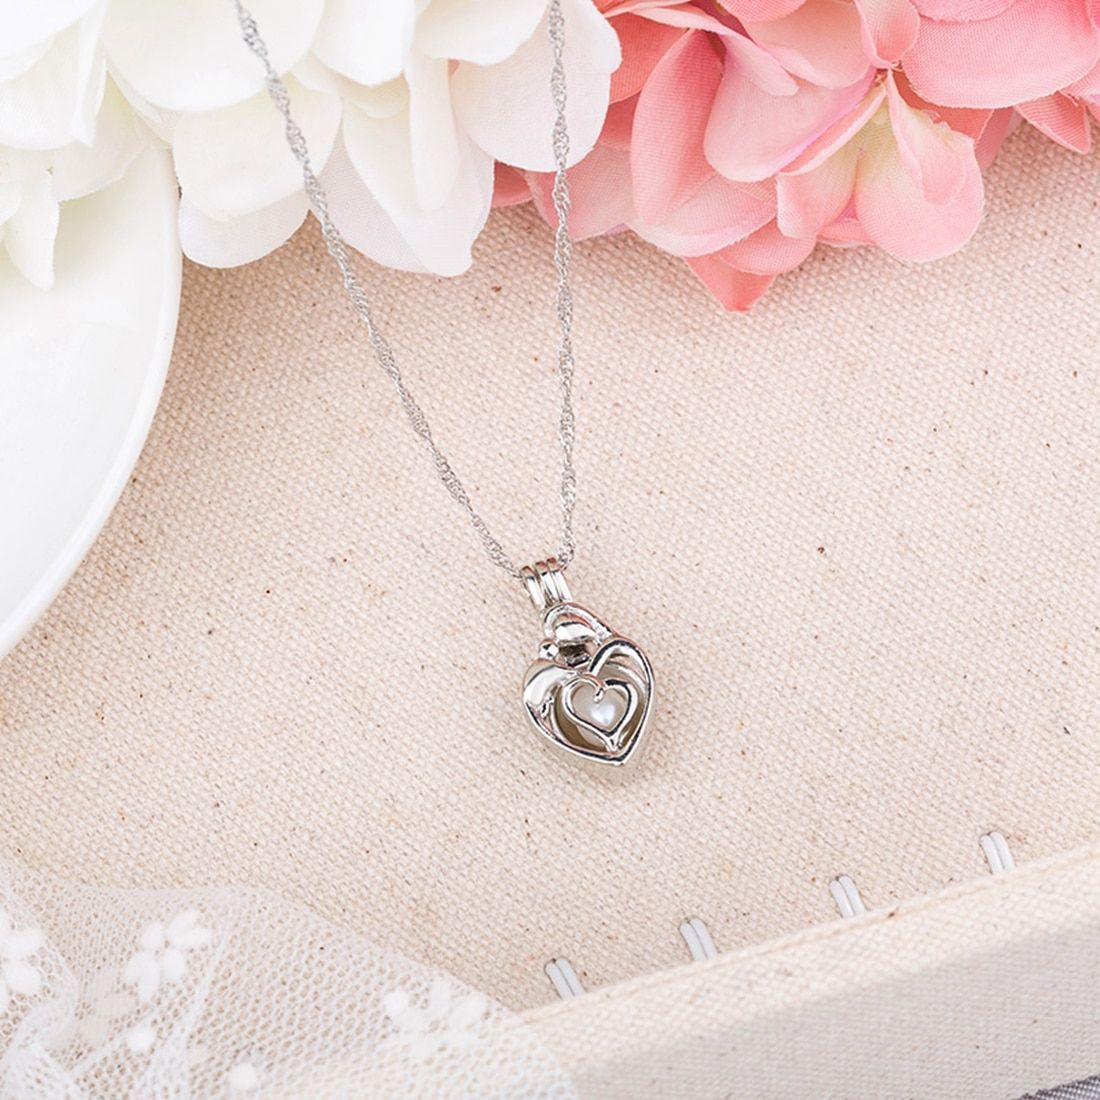 Necklace Jewelry For Women Hollow Luminous Necklace Pendant Gifts Fashion